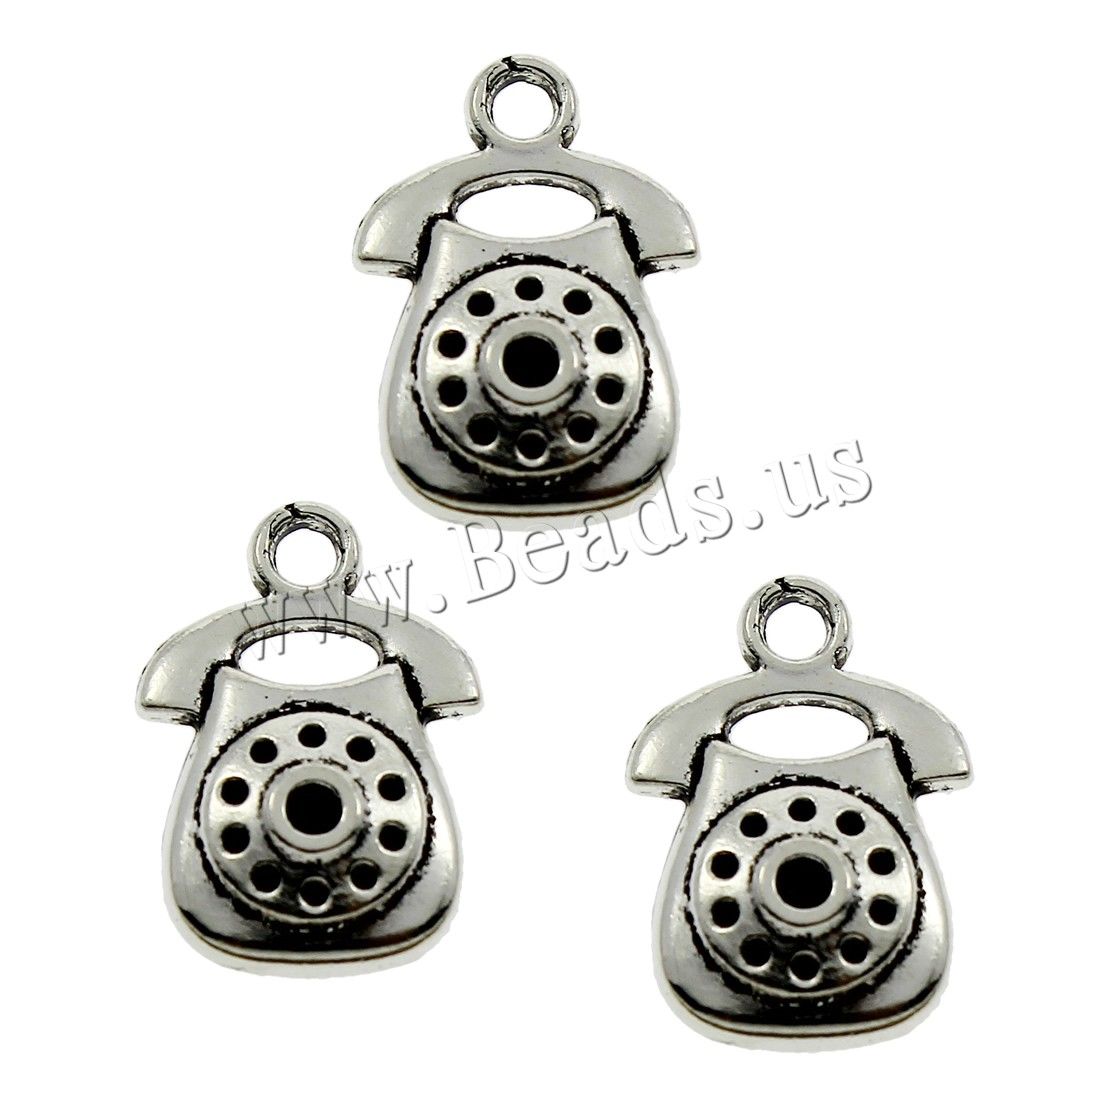 Buy Zinc Alloy Pendants Telephone antique silver color plated lead & cadmium free 12x17x2mm Hole:Approx 1.5mm 500PCs/Bag Sold Bag